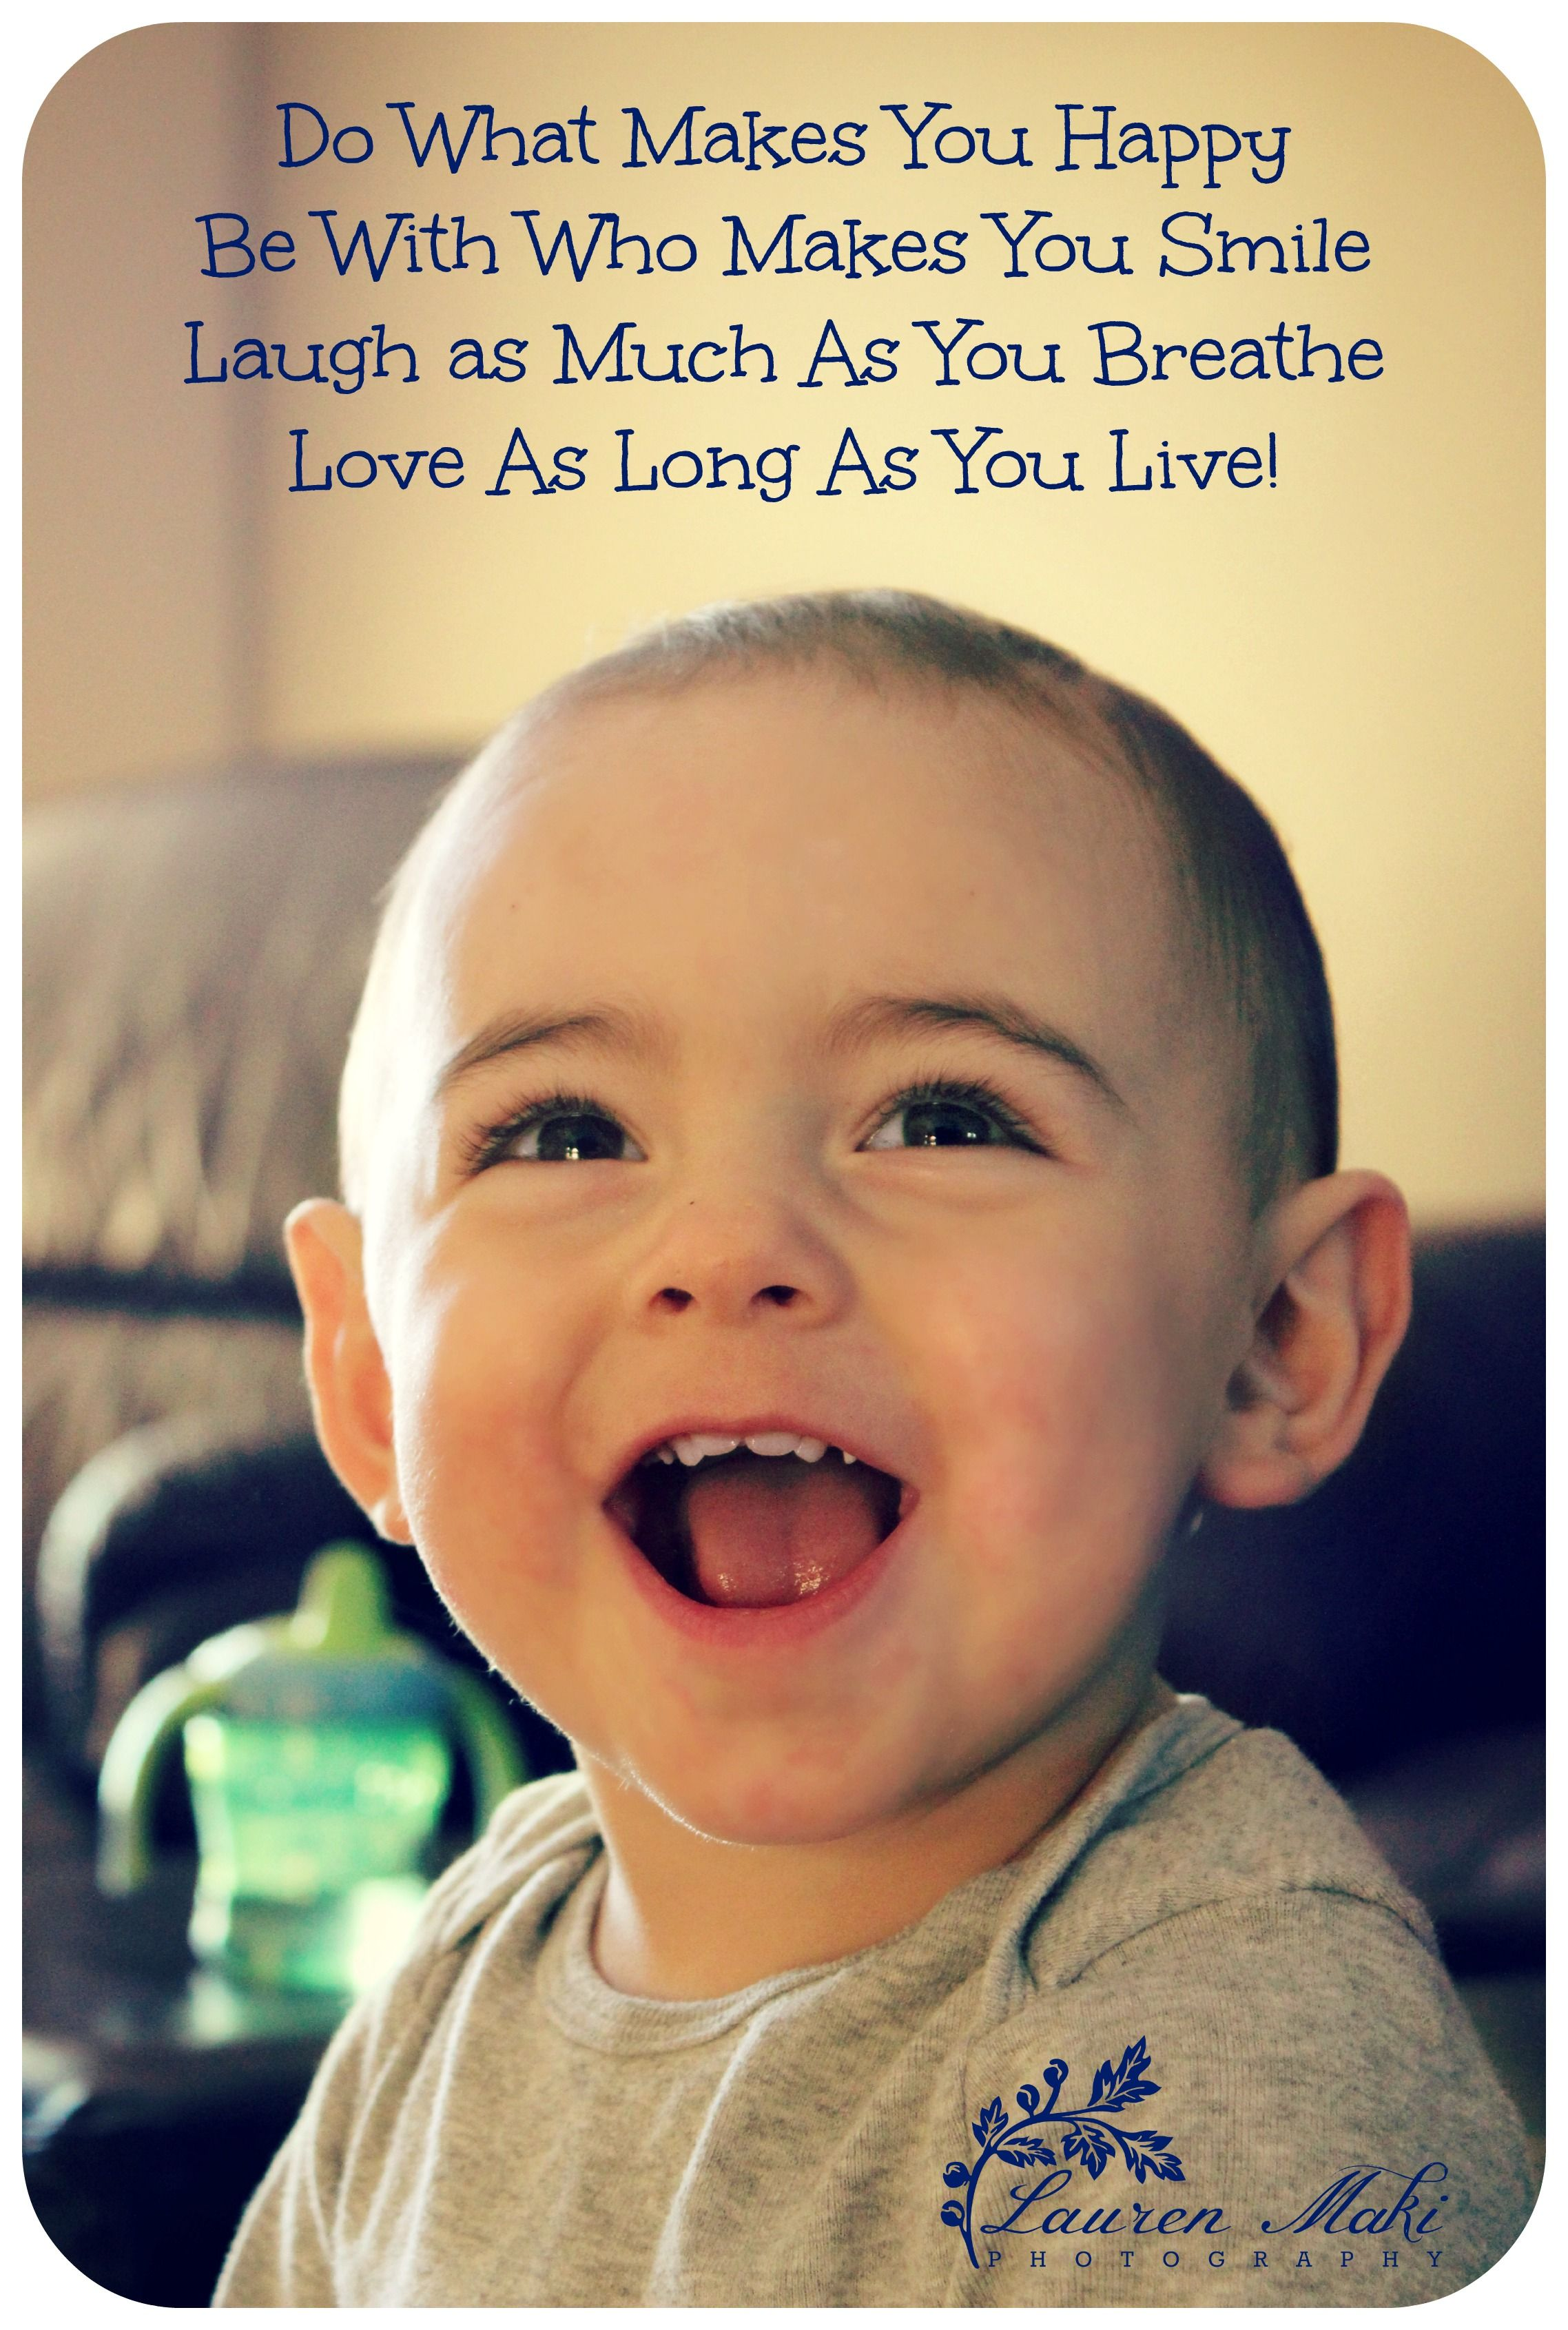 Live Love Laugh Happy Boy Baby Toddler Smile Laughing